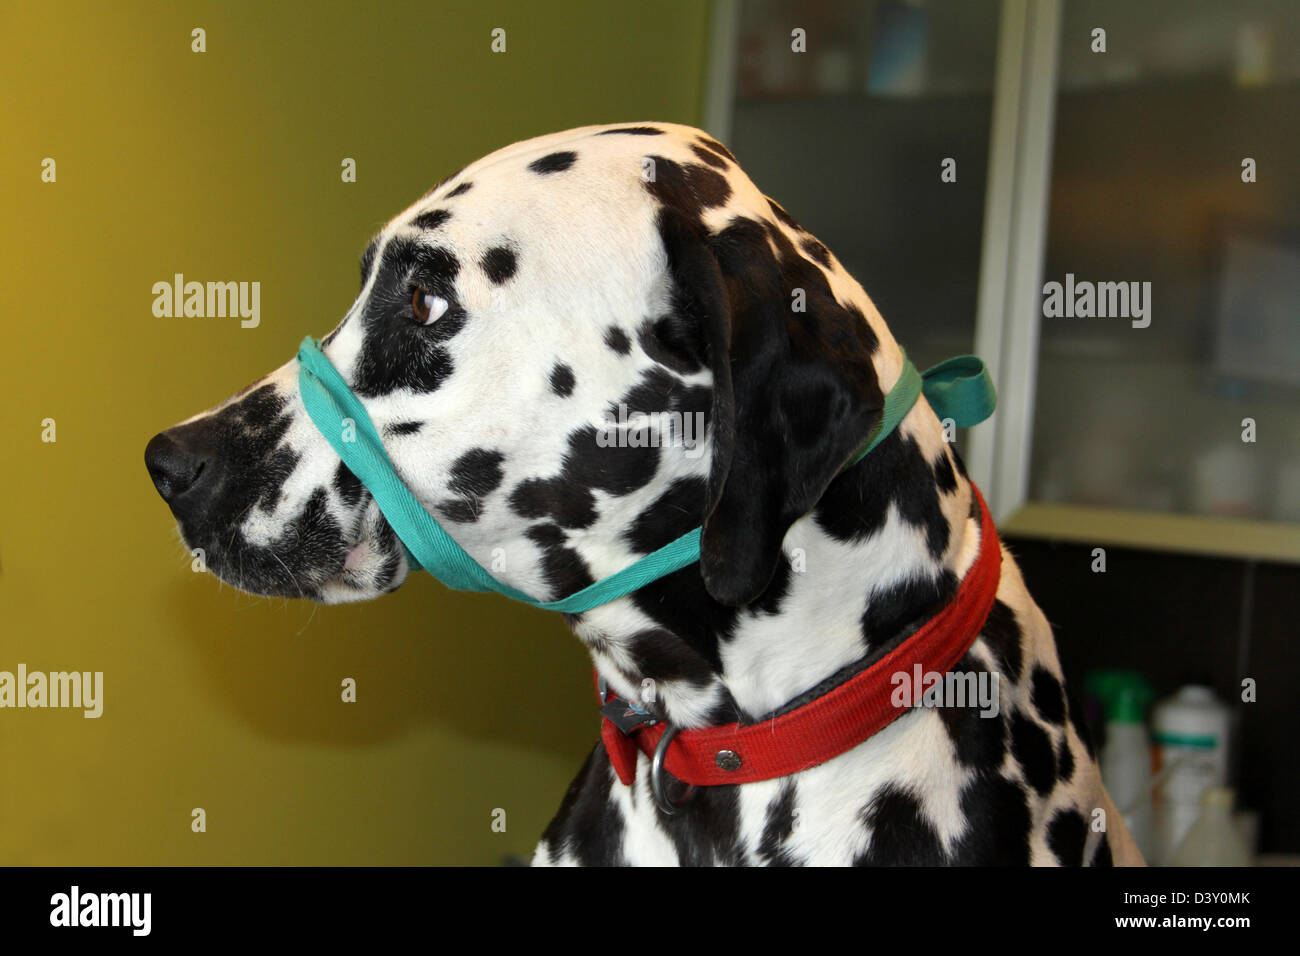 Dalmatian dog with a muzzle to the veterinarian - Stock Image